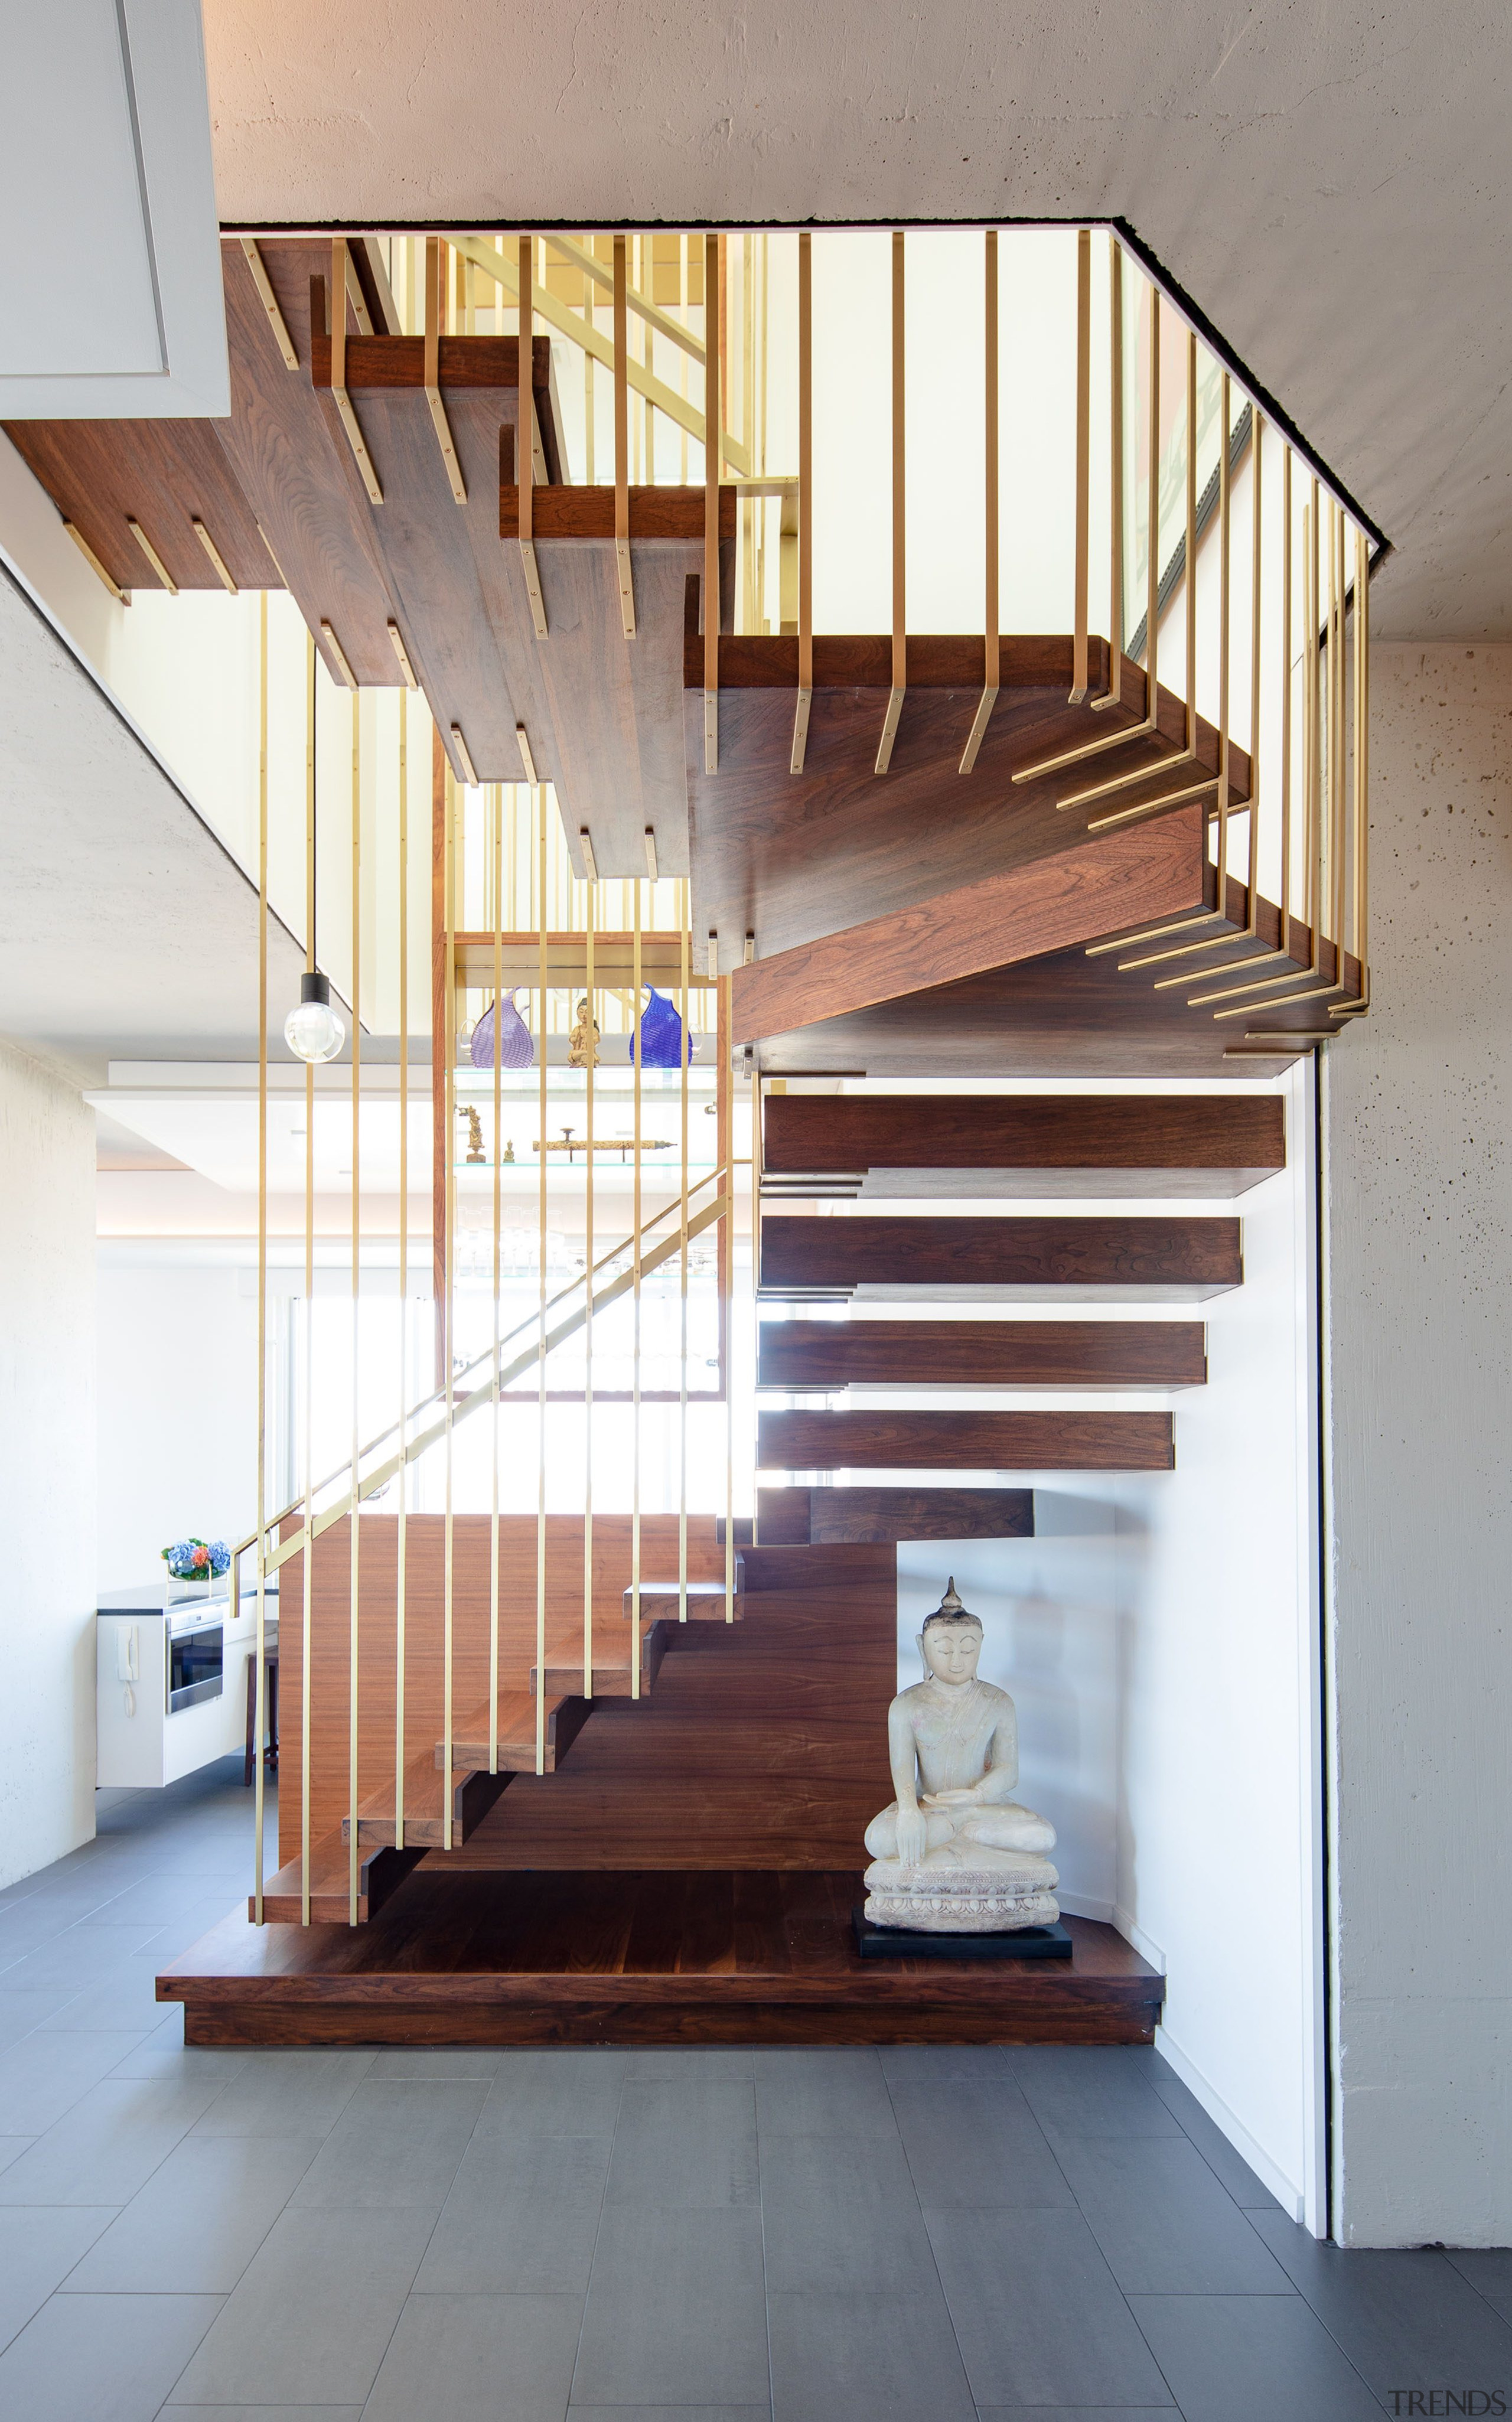 Steel rods dipped in brass are suspended 7.3m architecture, Penthouse, stairway, handrail, home, interior design, stairs, wood, suspended stairway, Andrew Wilkinson